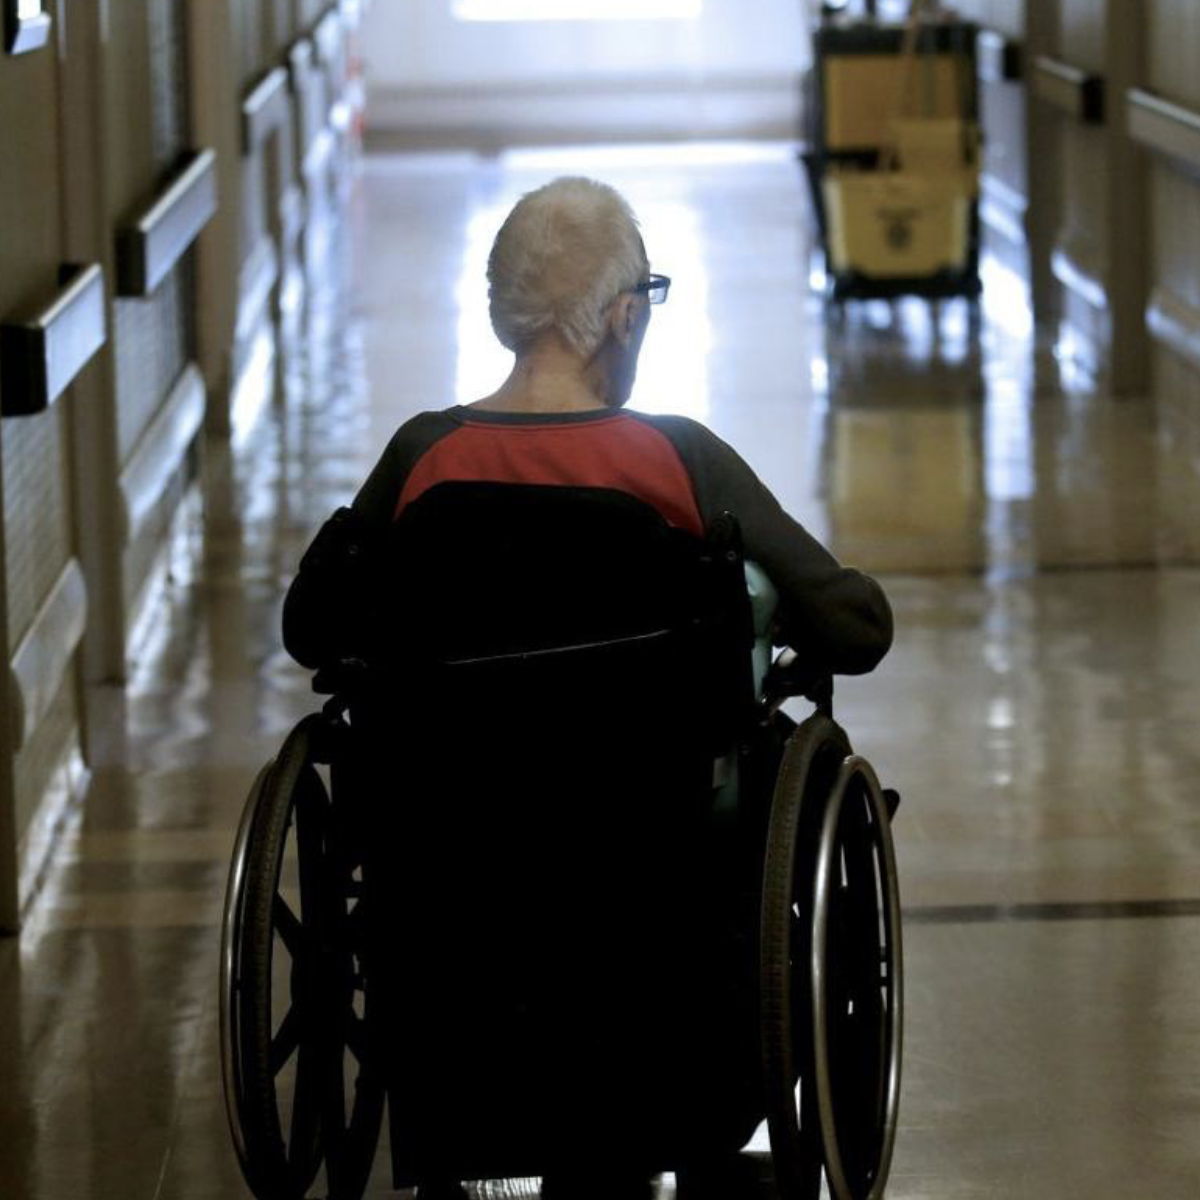 Buffalo Nursing Home Hit With Biggest State Fine From COVID-19 Violations Image